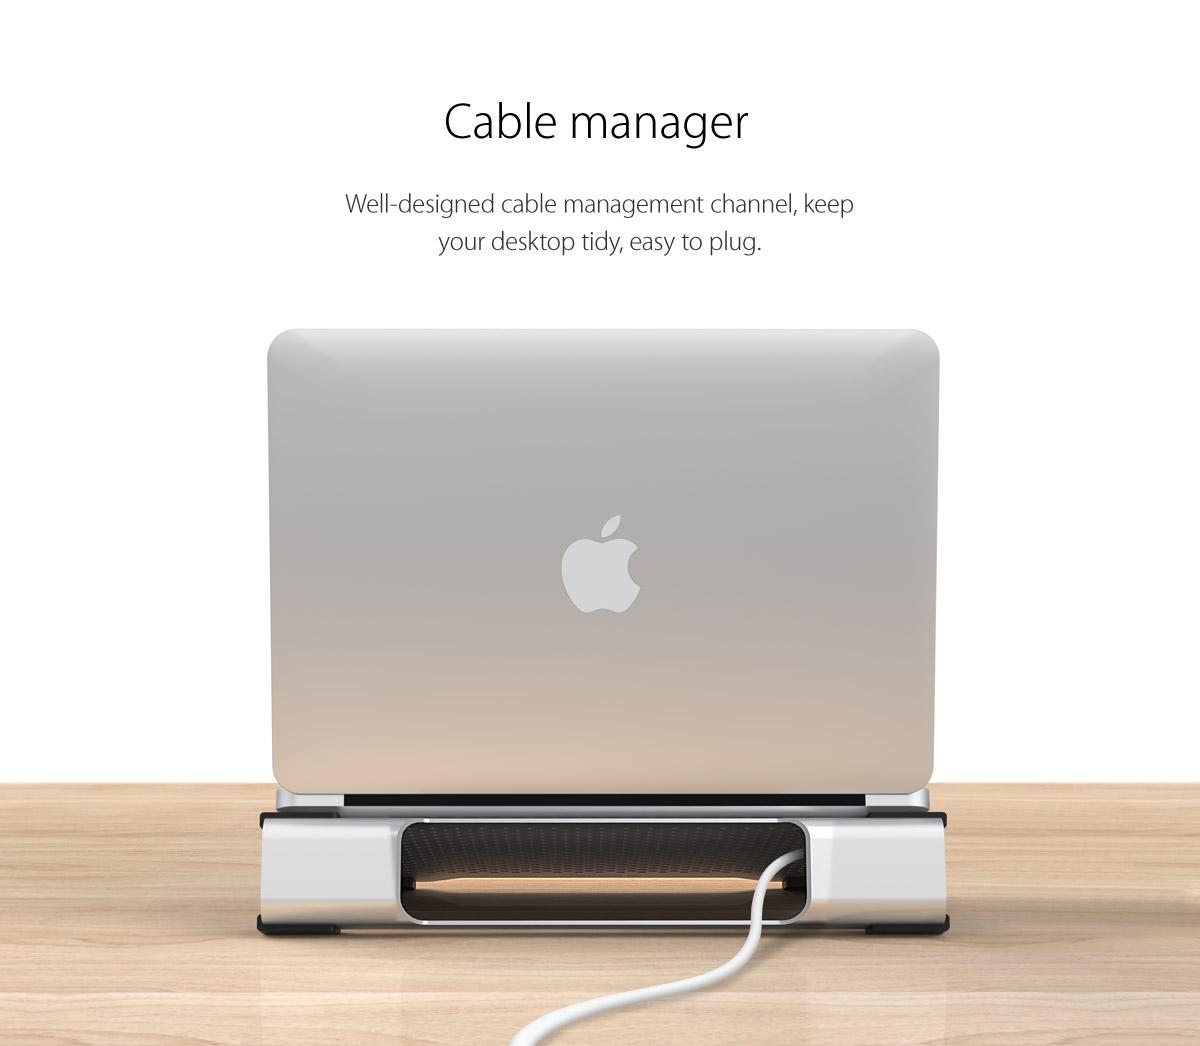 well-designed cable management channel